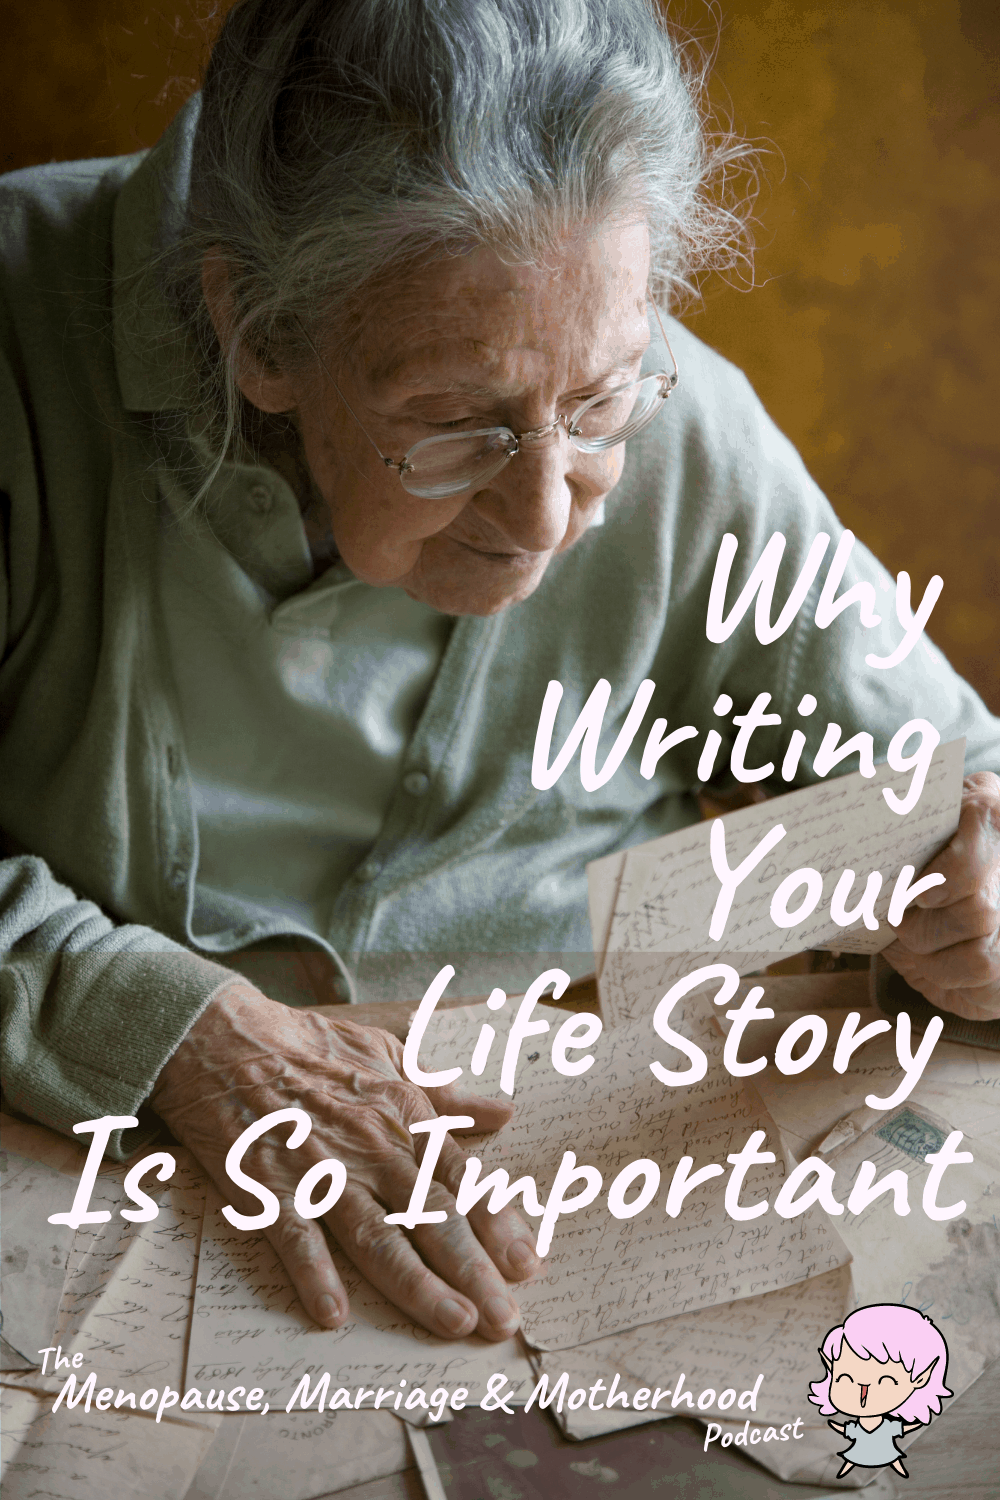 Righting Writing with Jo podcast pin #2